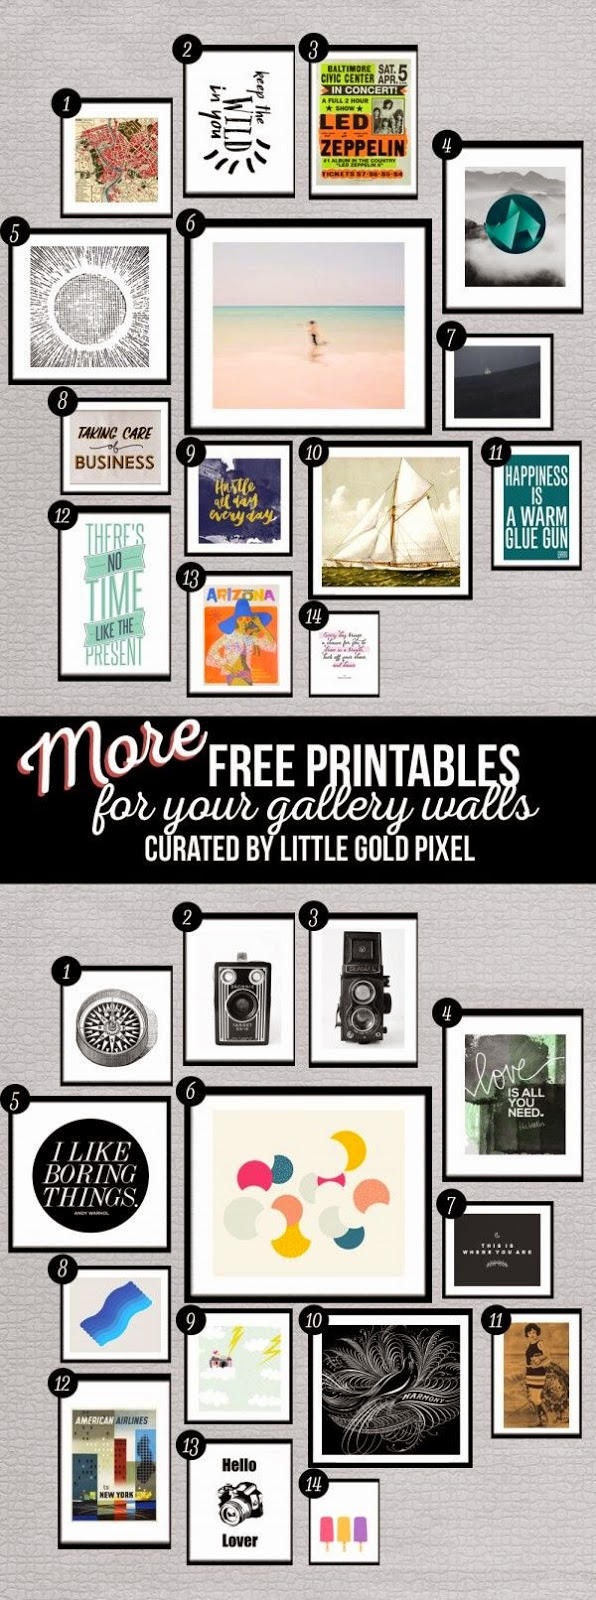 Free Printable Gallery Wall Art Curated By Little Gold Pixel